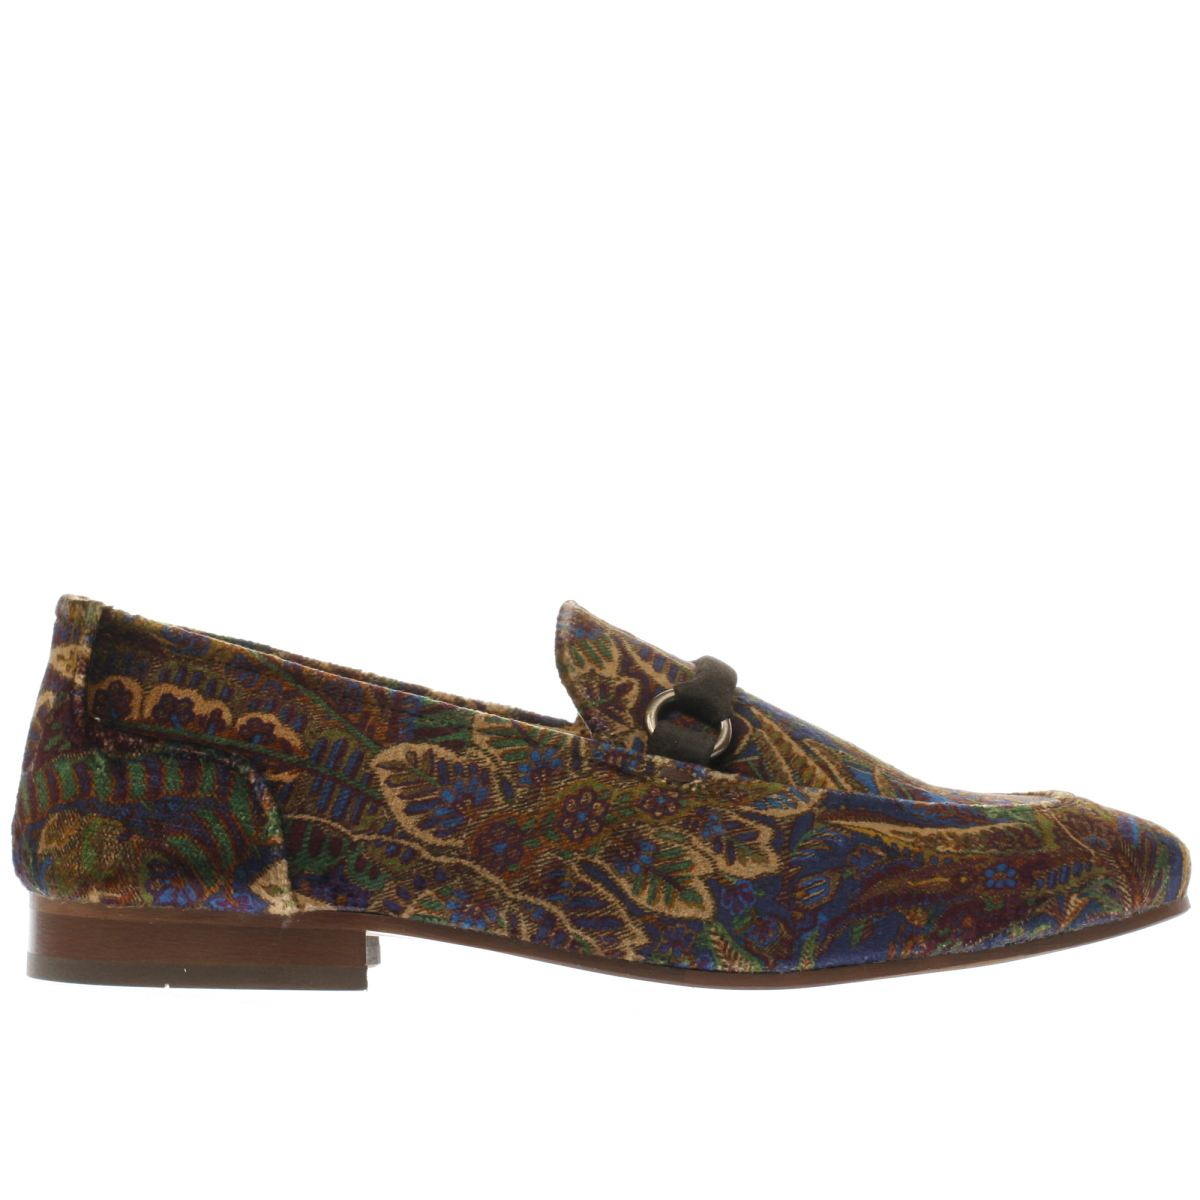 h by hudson navy & gold renzo shoes